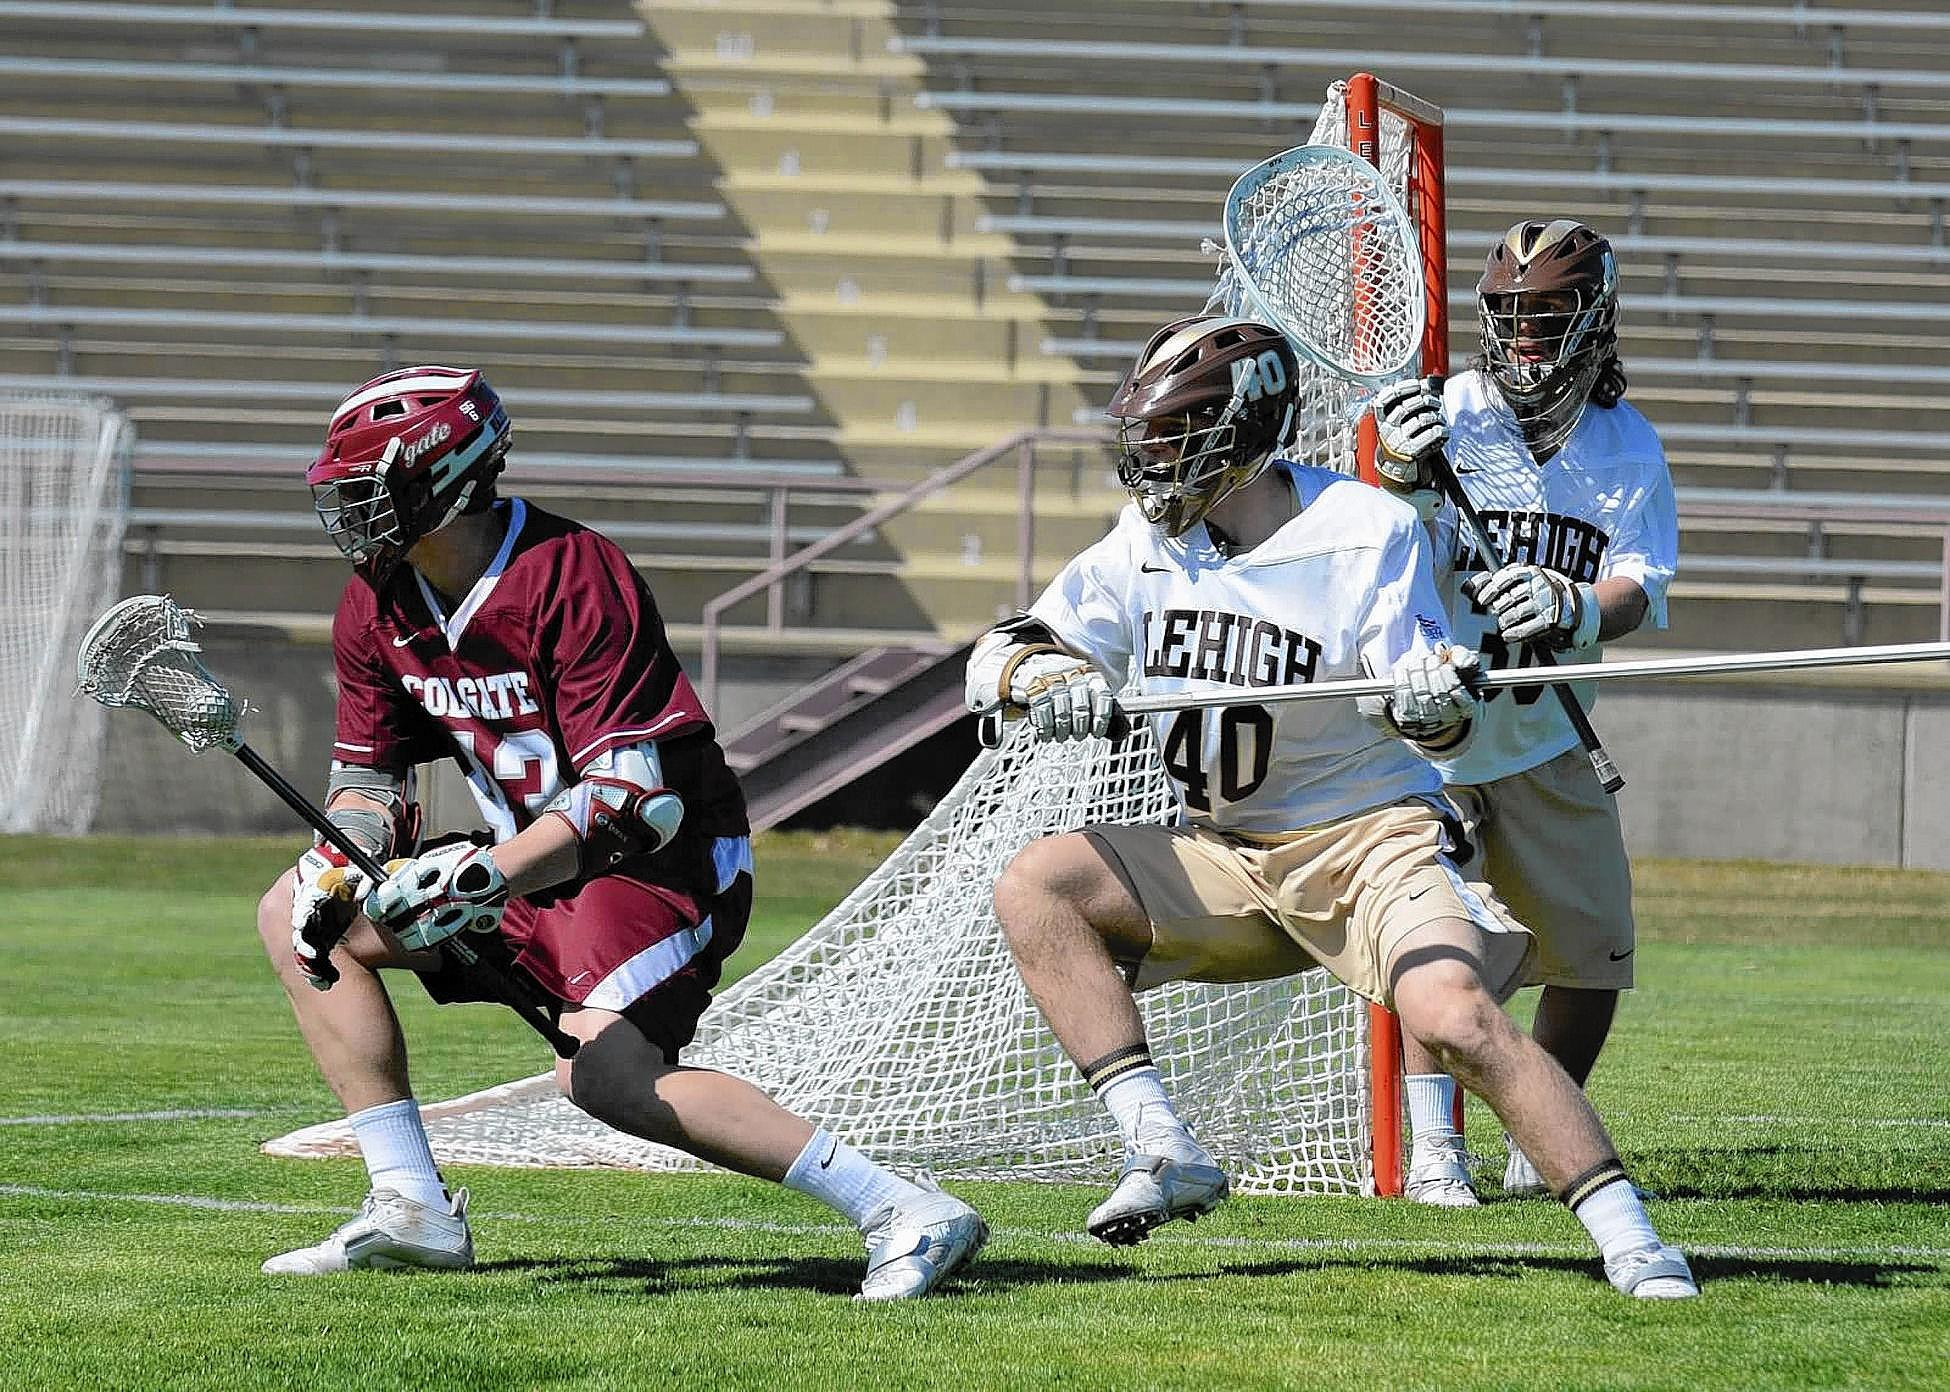 Lehigh's Ty Souders (40) has five turnovers (caused), 14 ground balls and an assist through the first five contests of the seasons.